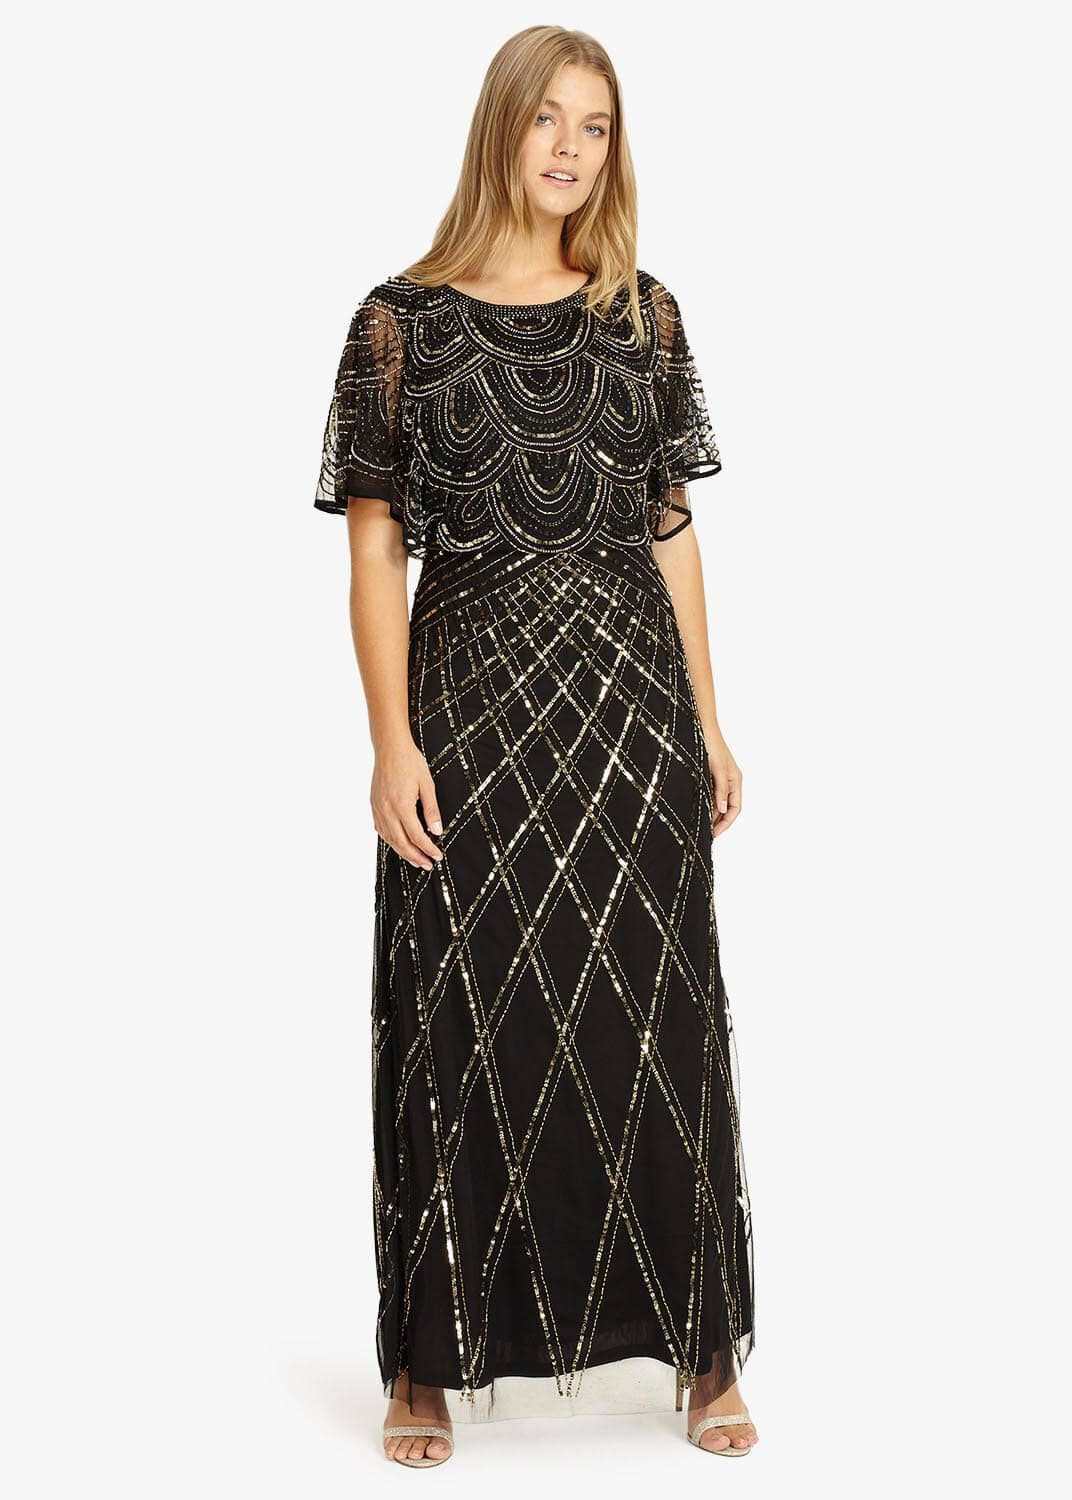 Studio 8 Bella Maxi Dress, Black, Maxi